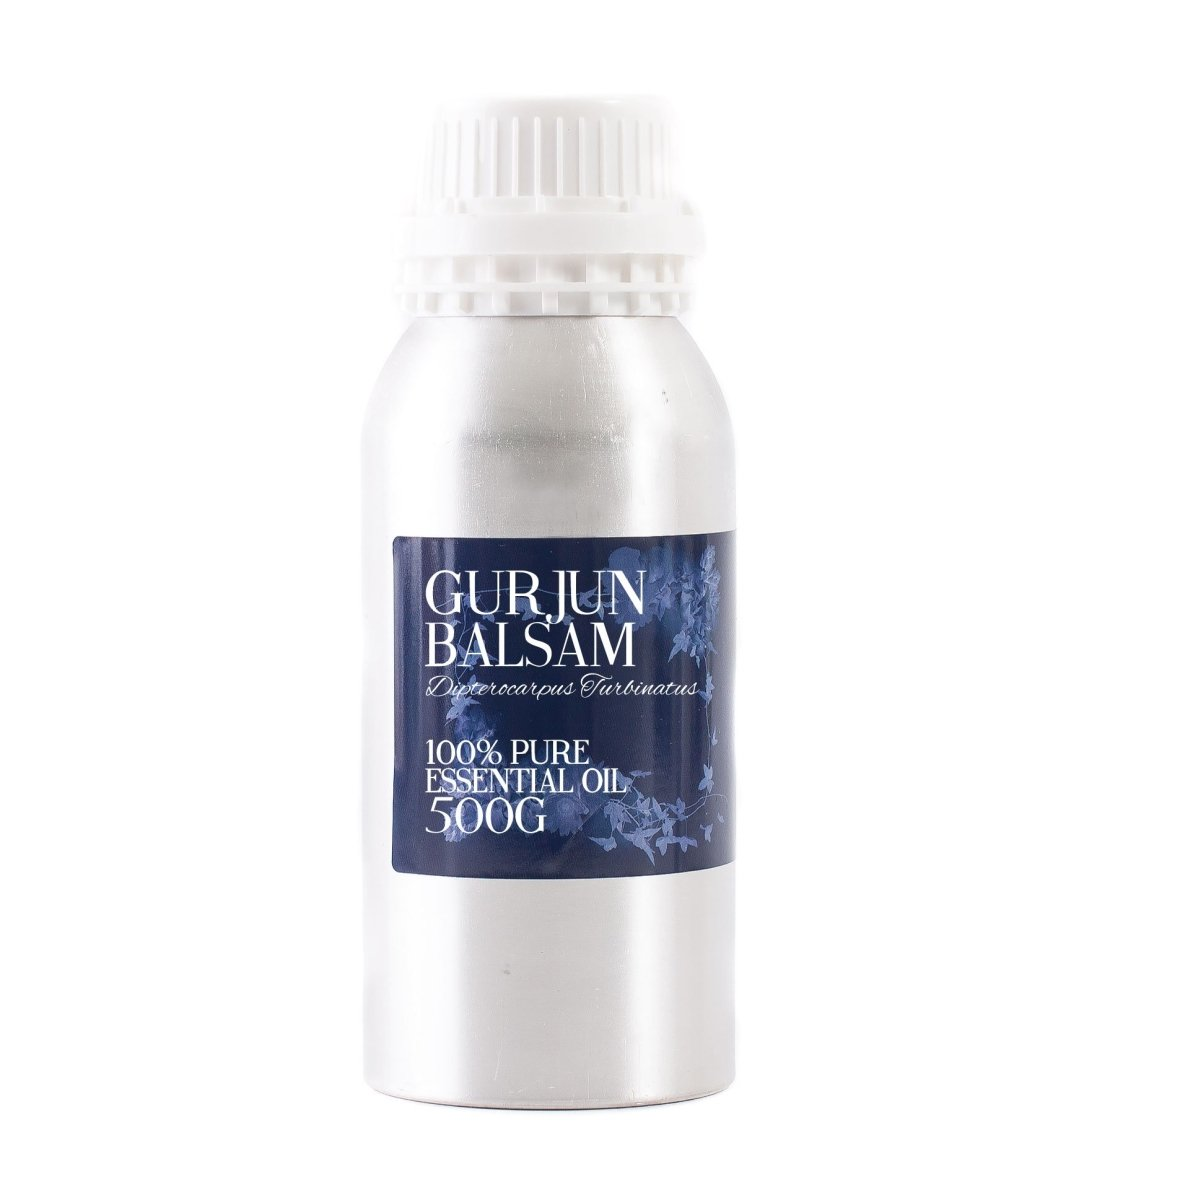 Gurjun Balsam Essential Oil - Mystic Moments UK